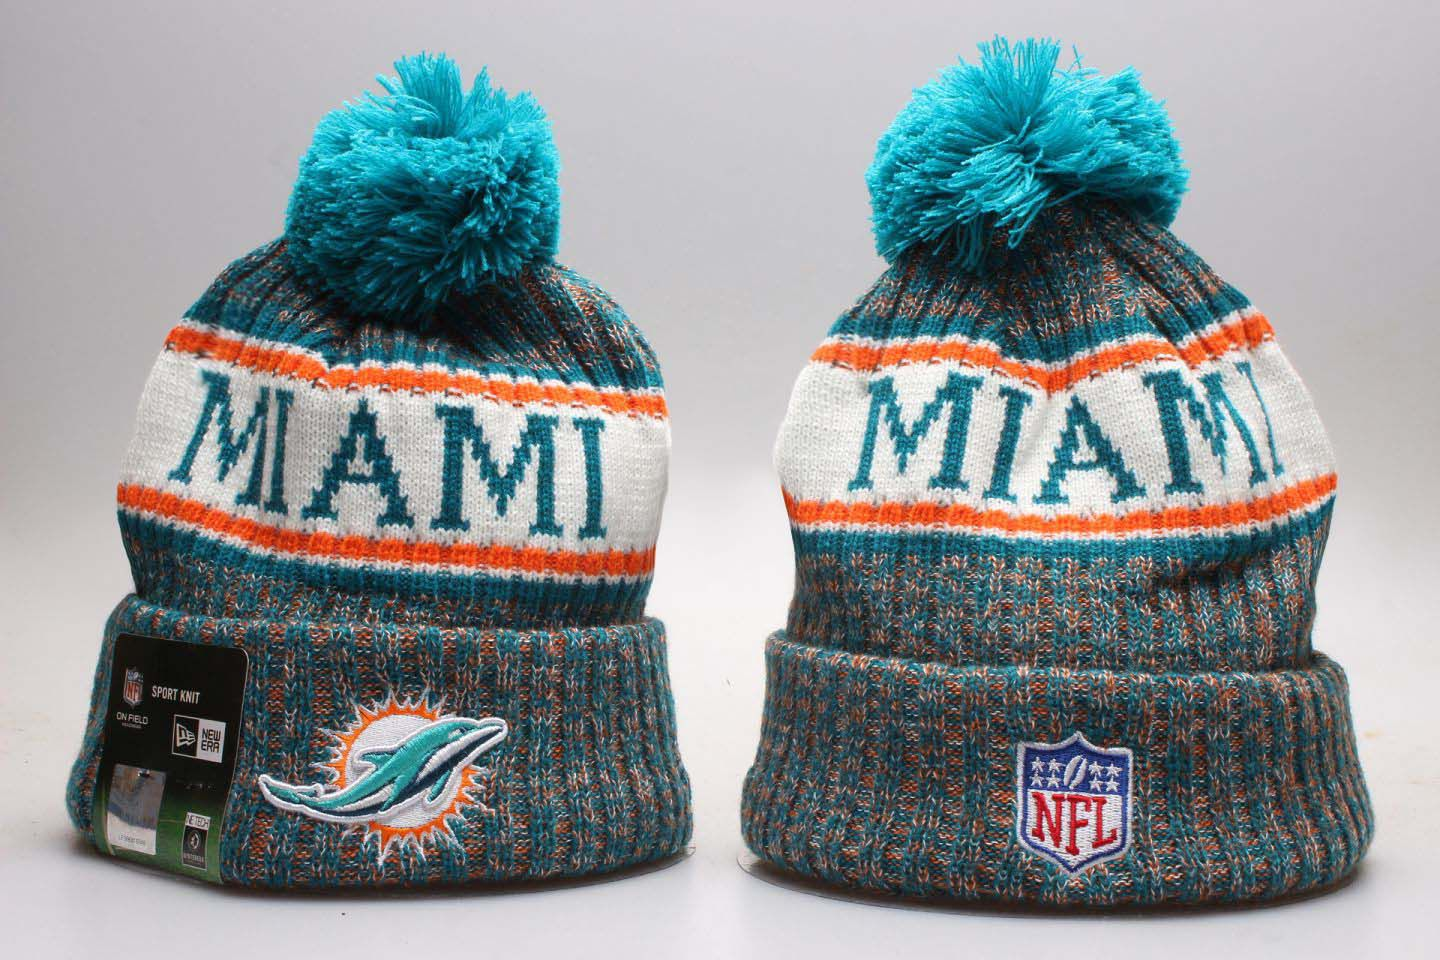 NFL Miami Dolphins Beanie hot hat3